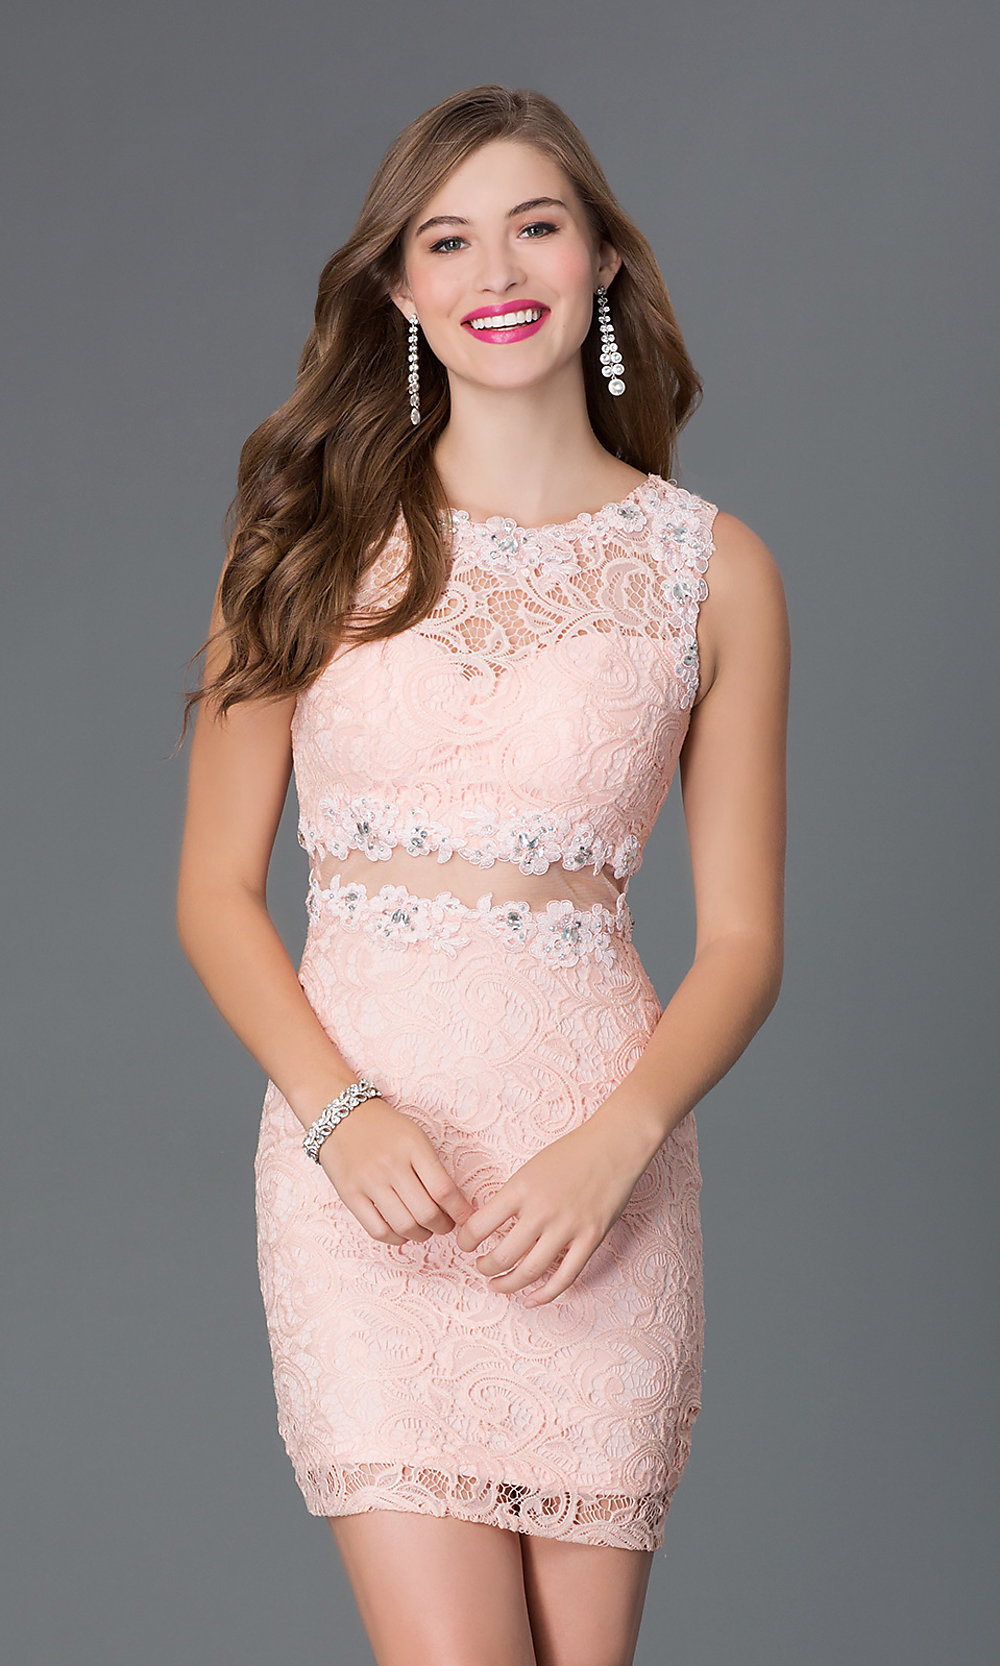 Lace Cocktail Dress, Homecoming Dress- PromGirl